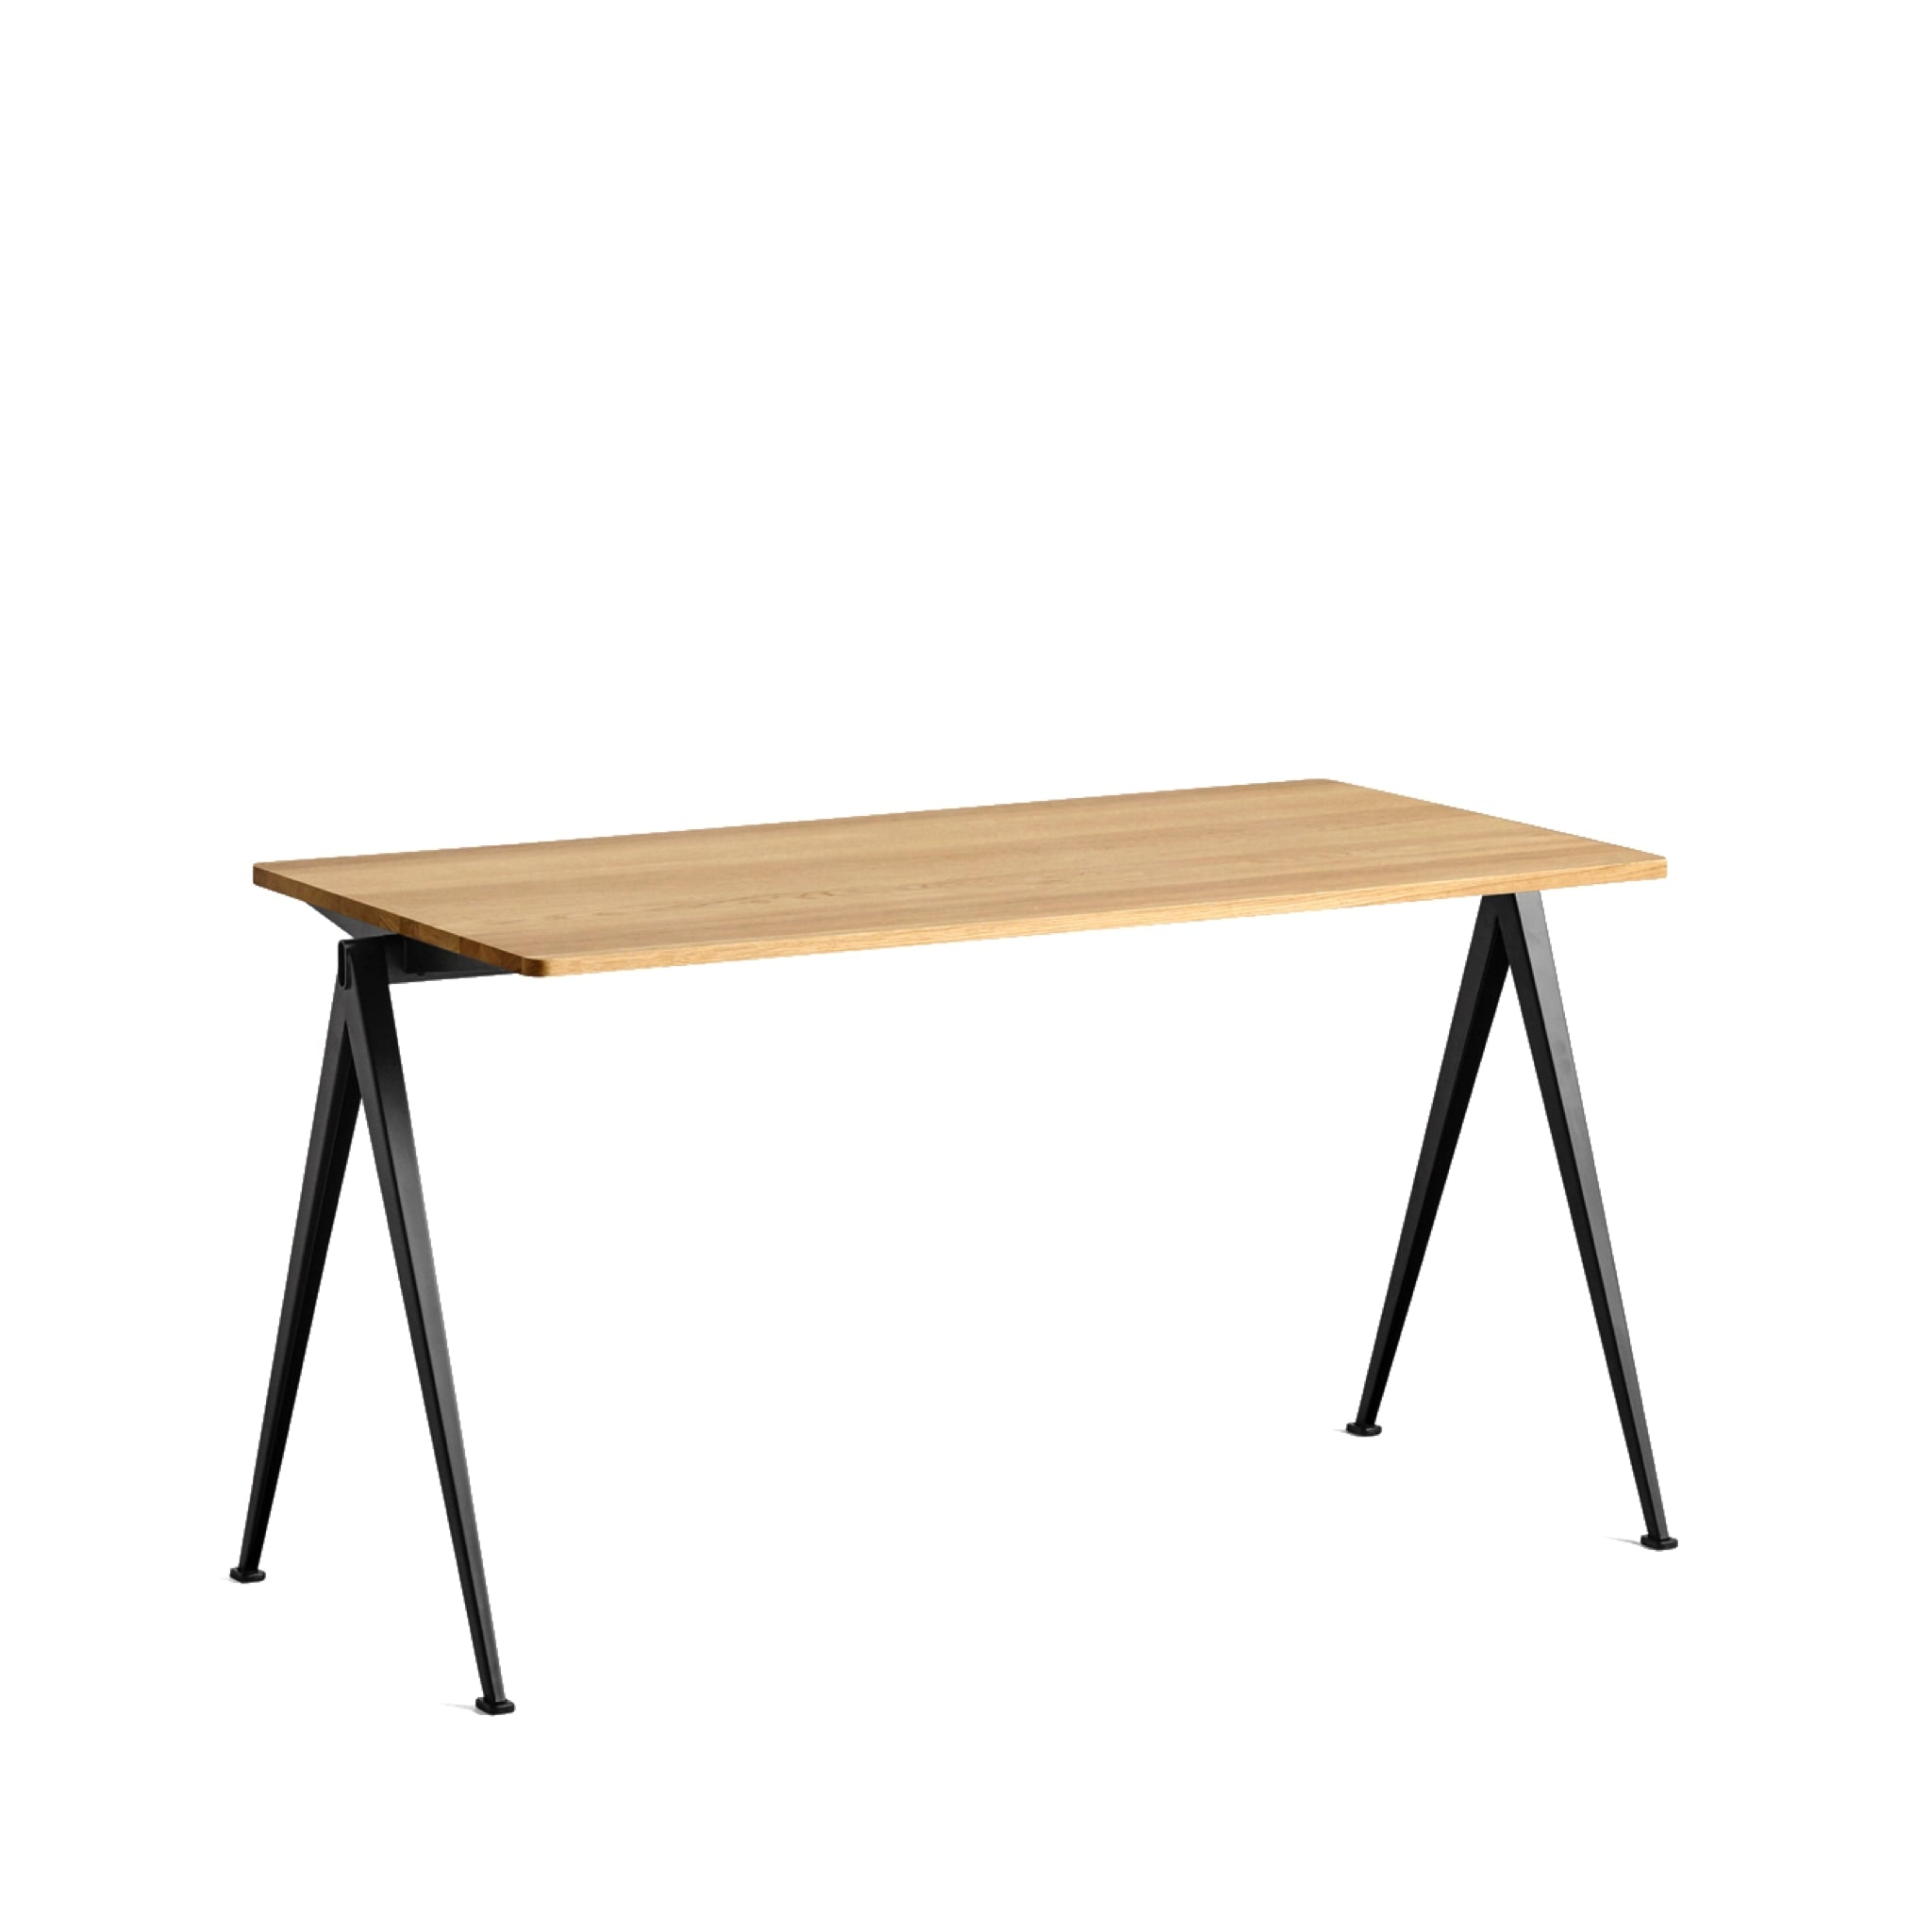 Pyramid Table 01 by Hay